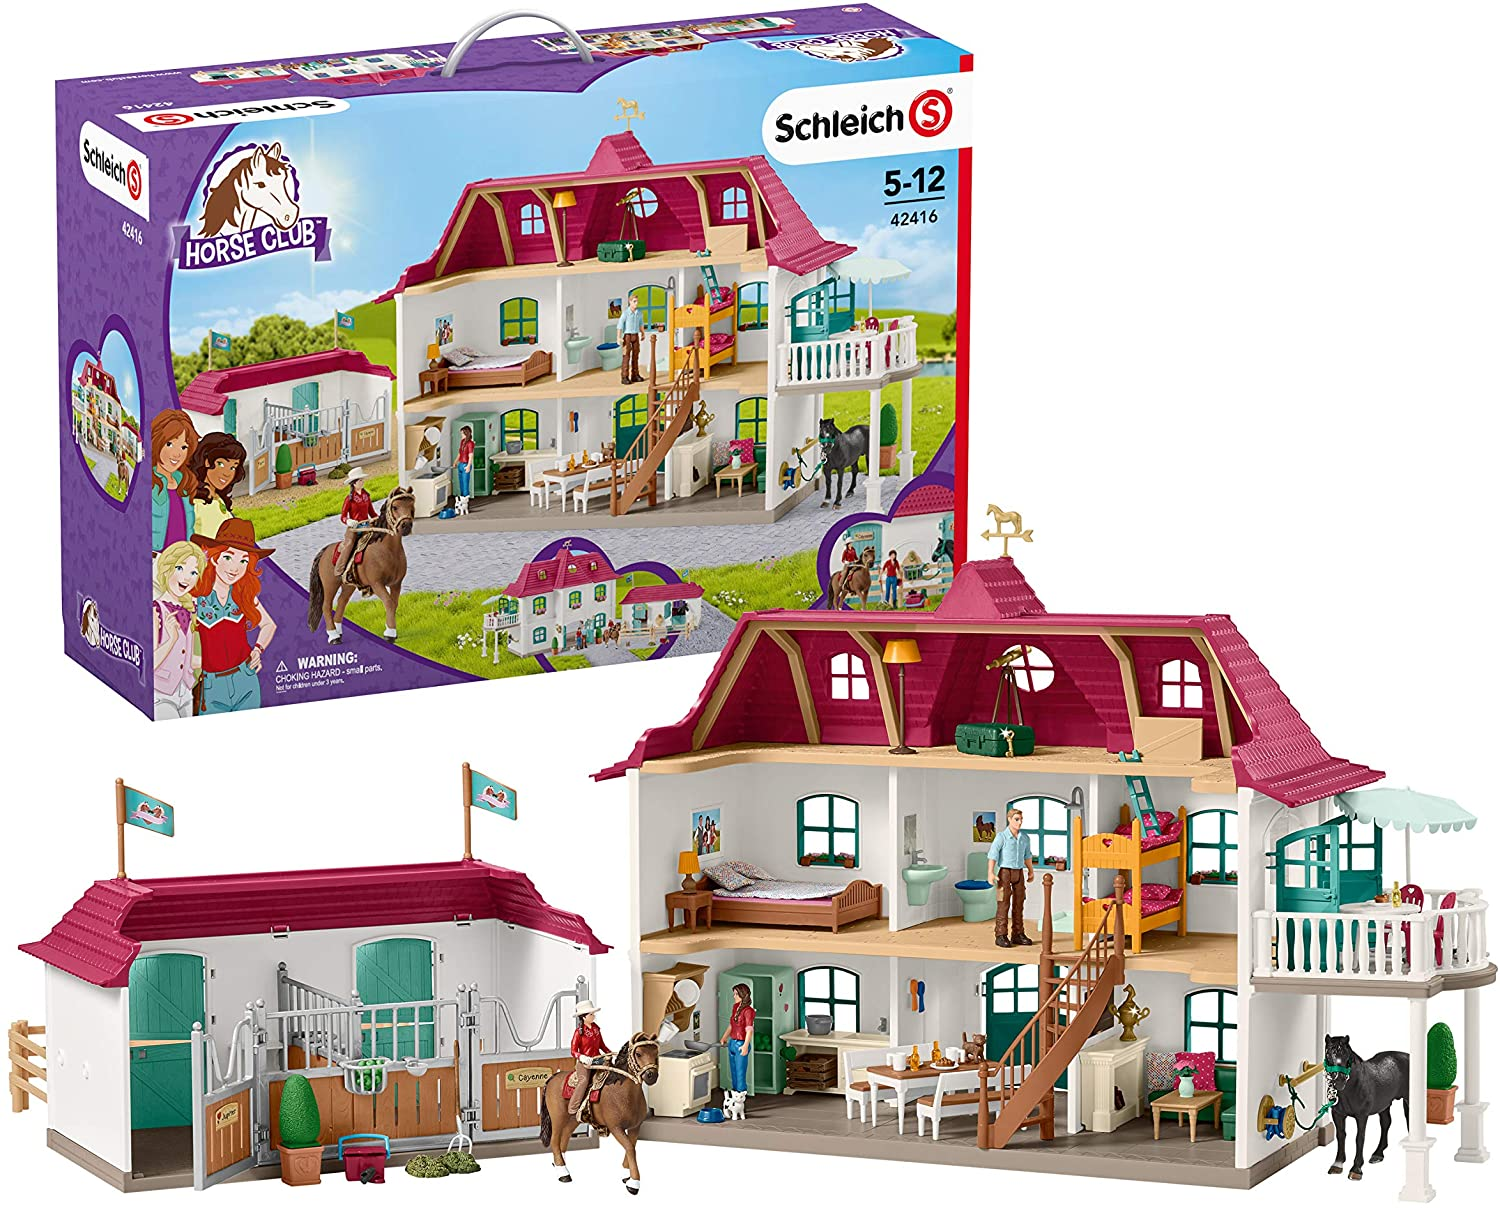 Max 77% OFF Schleich Horse Club 70-Piece Lakeside Dollhouse and Country Hors Rapid rise